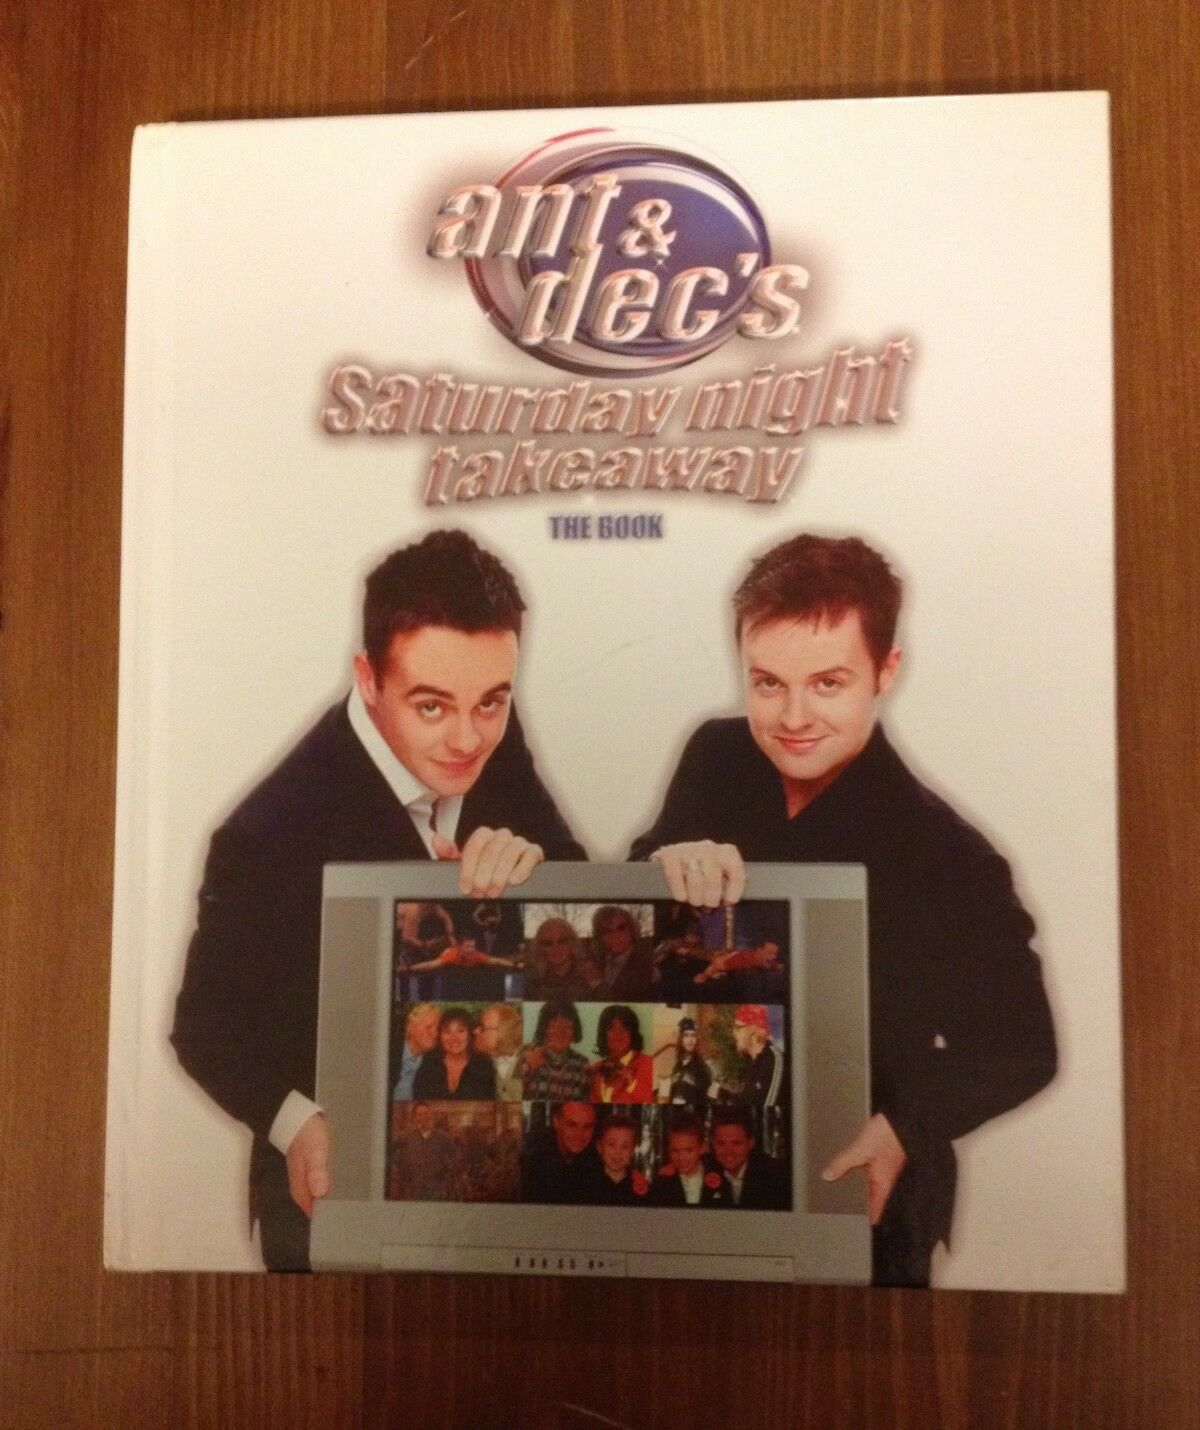 Ant & Dec's Saturday Book Night Takeasway The Book Saturday 7ca86d